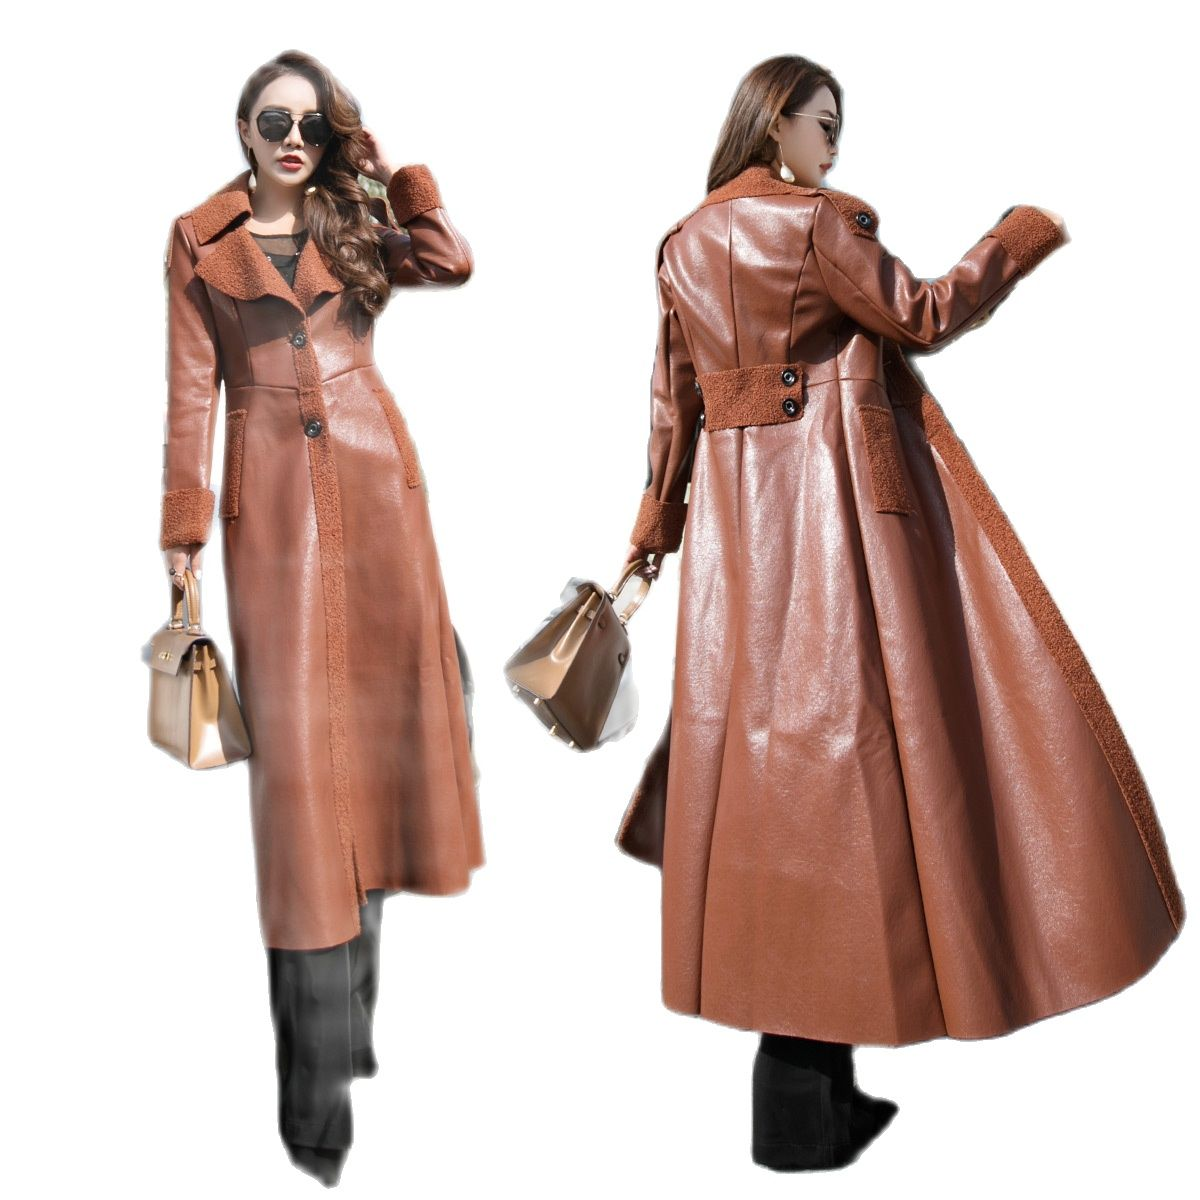 2021 Women's fur coat long leather coat Korean thickened lamb fur one coat over the knee Pu cotton padded jacket winter jacket